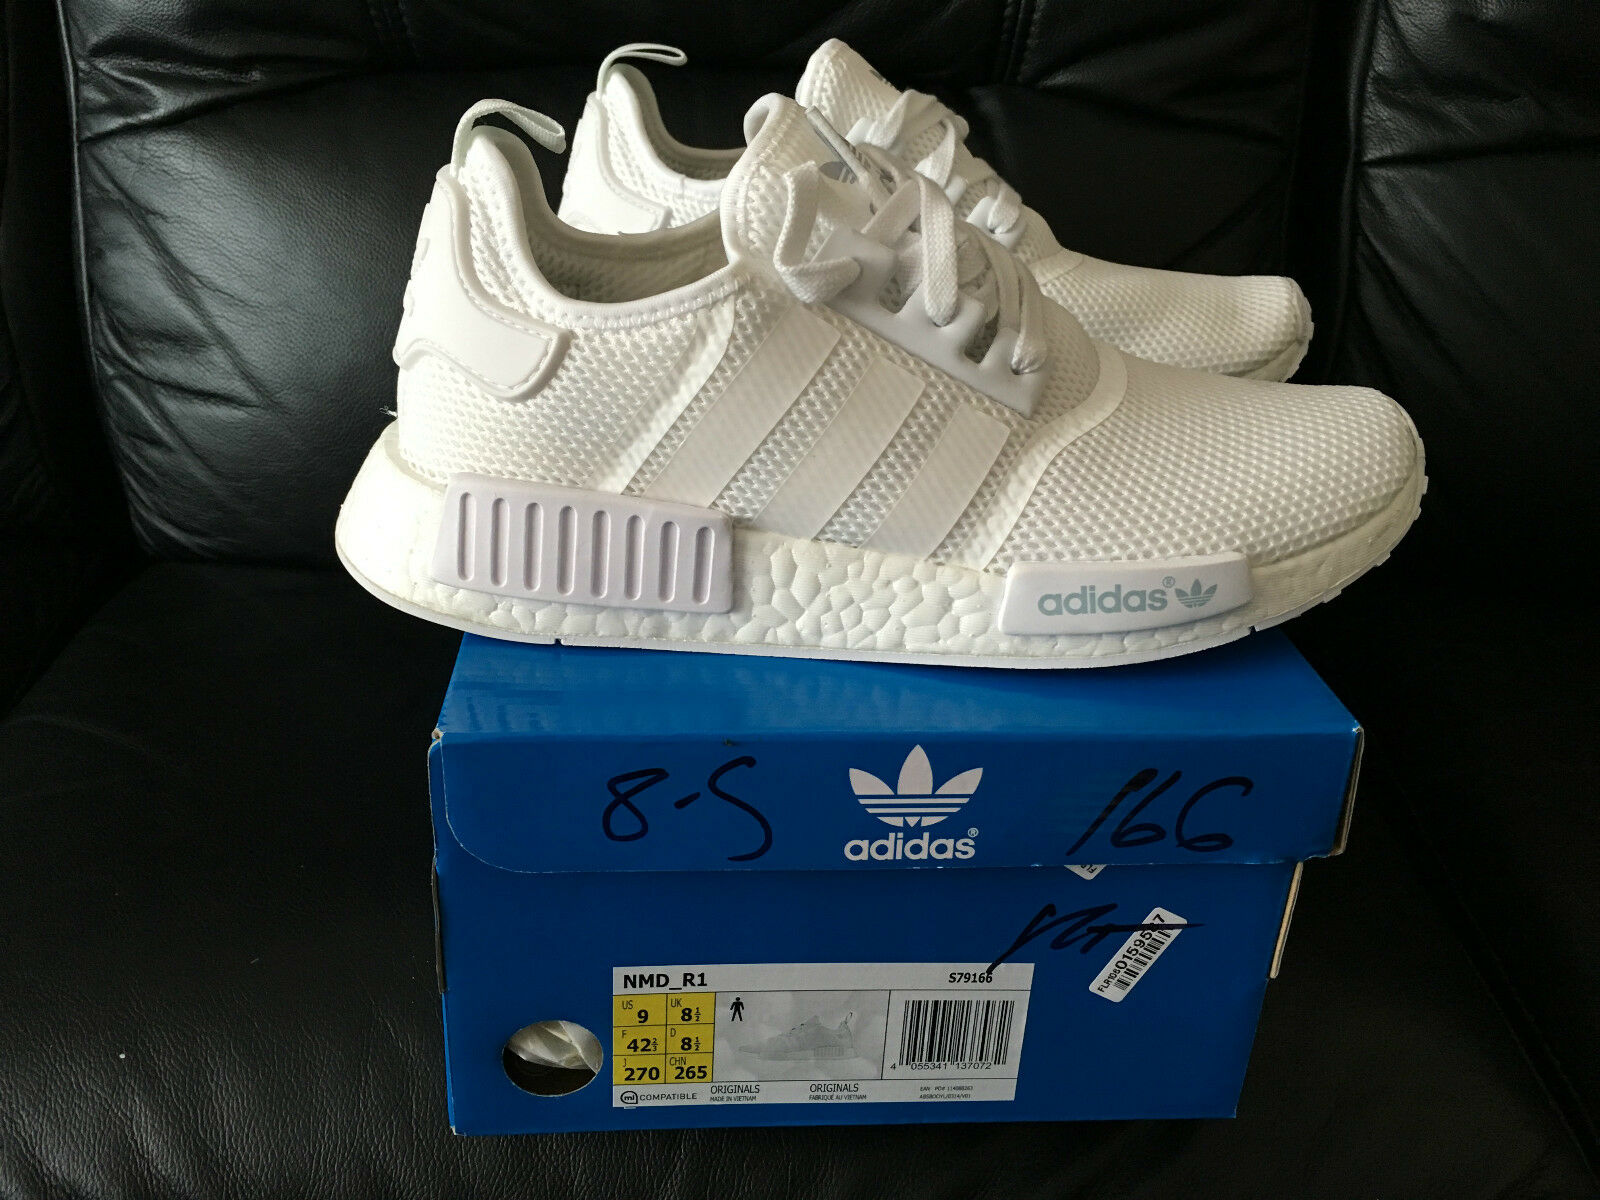 Adidas NMD R1 Runner Triple Tous blanc Maille Tailles UK 6.5 & 7.5 Neuf